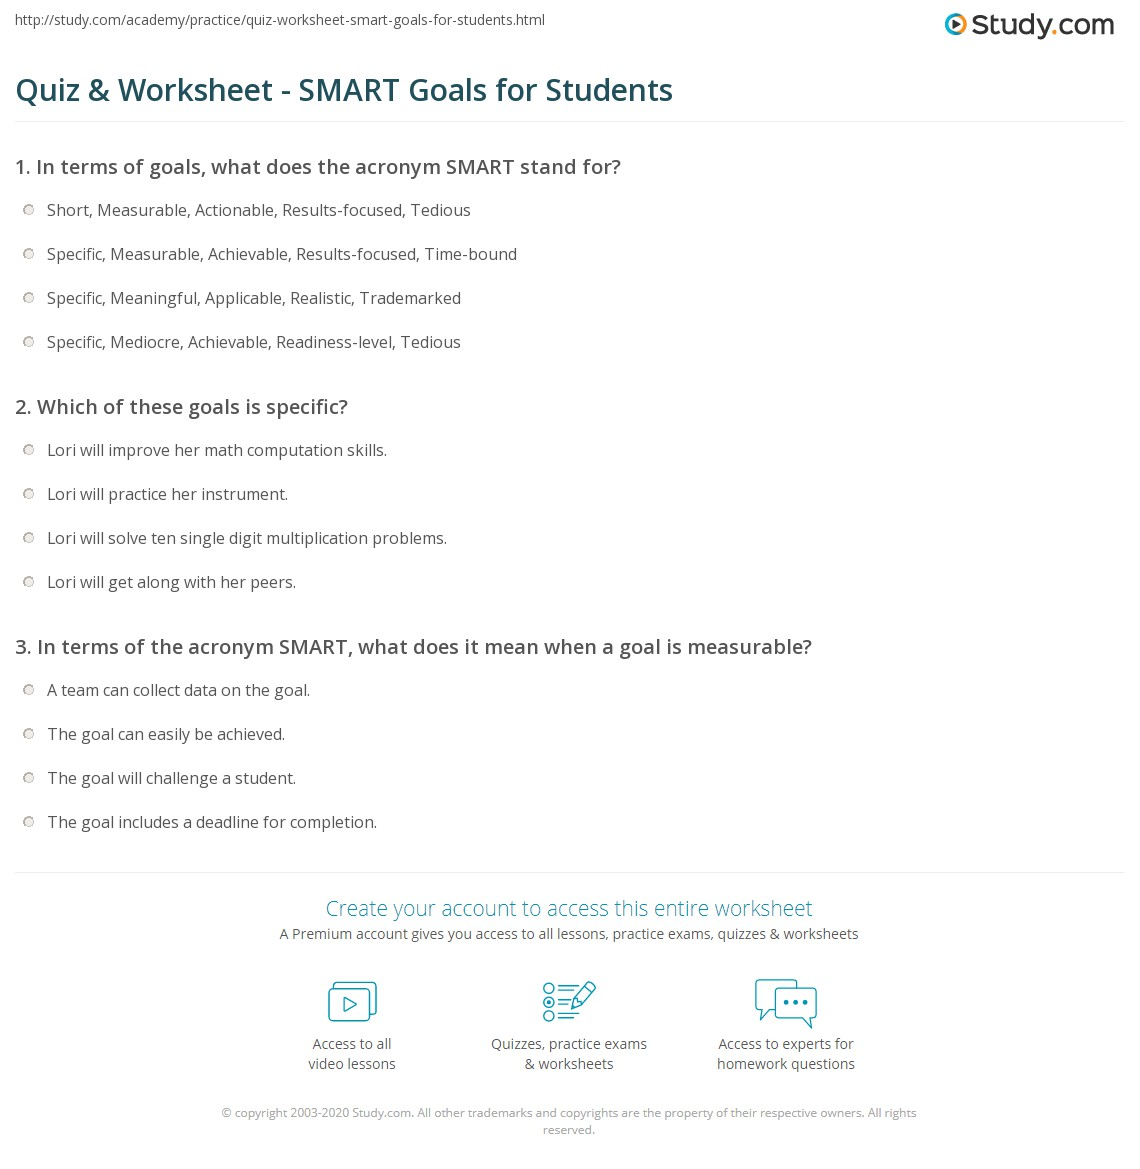 Quiz Worksheet Smart Goals For Students Study